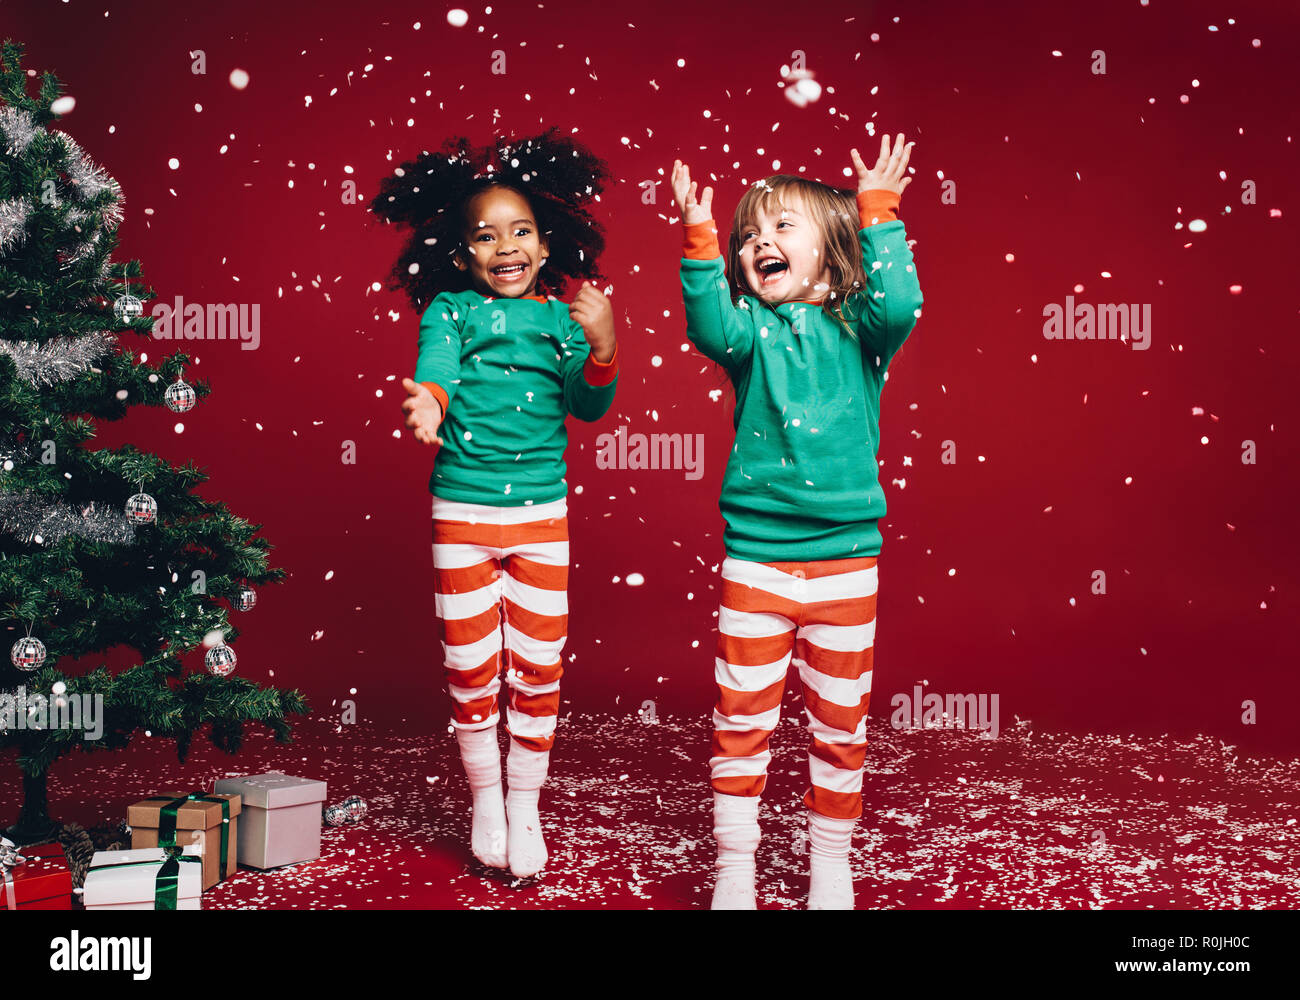 Little Girls In Christmas Costume Having Fun And Jumping Beside A Decorated Christmas Tree Two Kids Playing With Falling Artificial Snow Flakes Near Stock Photo Alamy